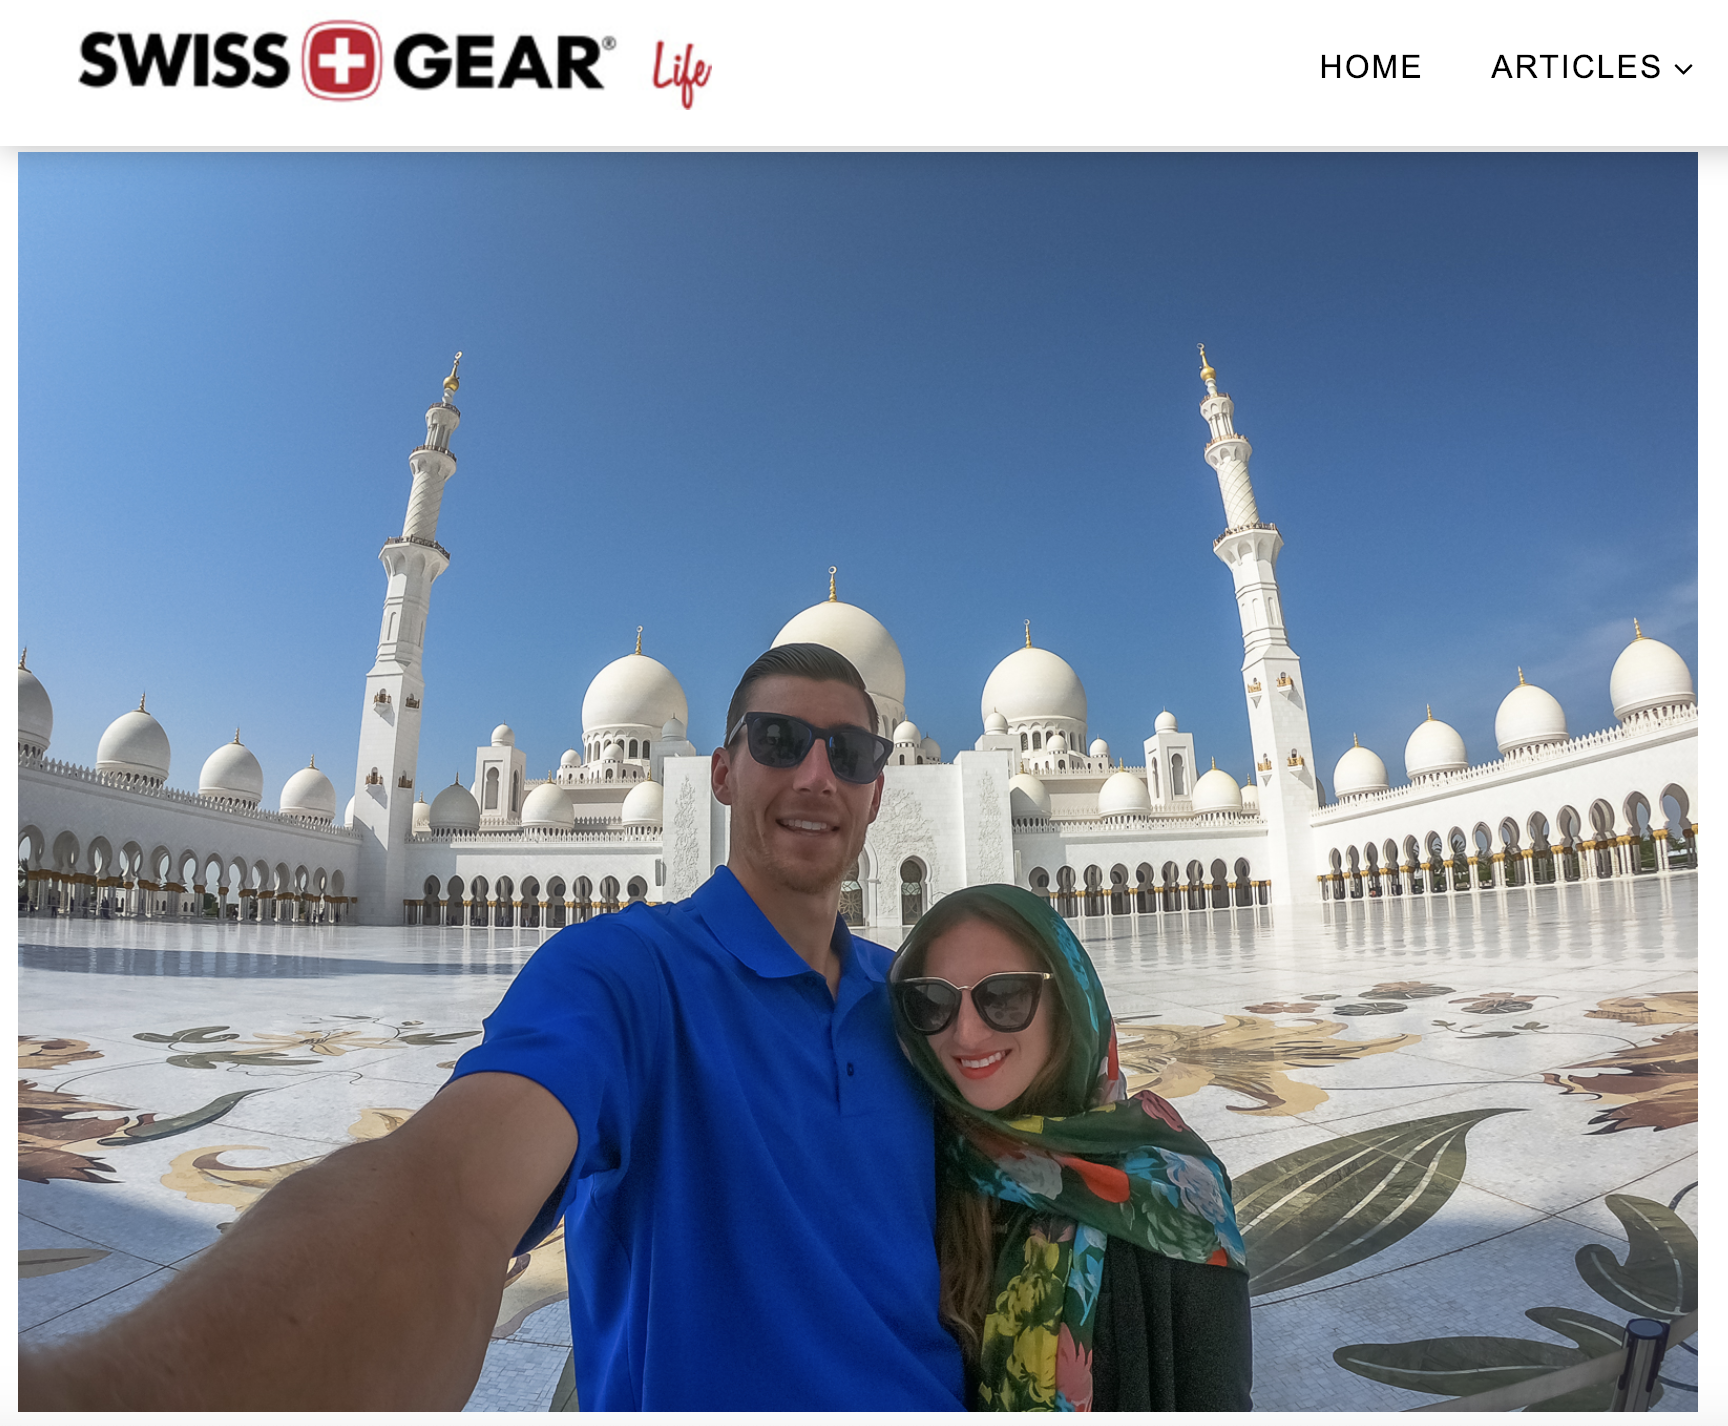 Swissgear blog - Grand Mosque selfie